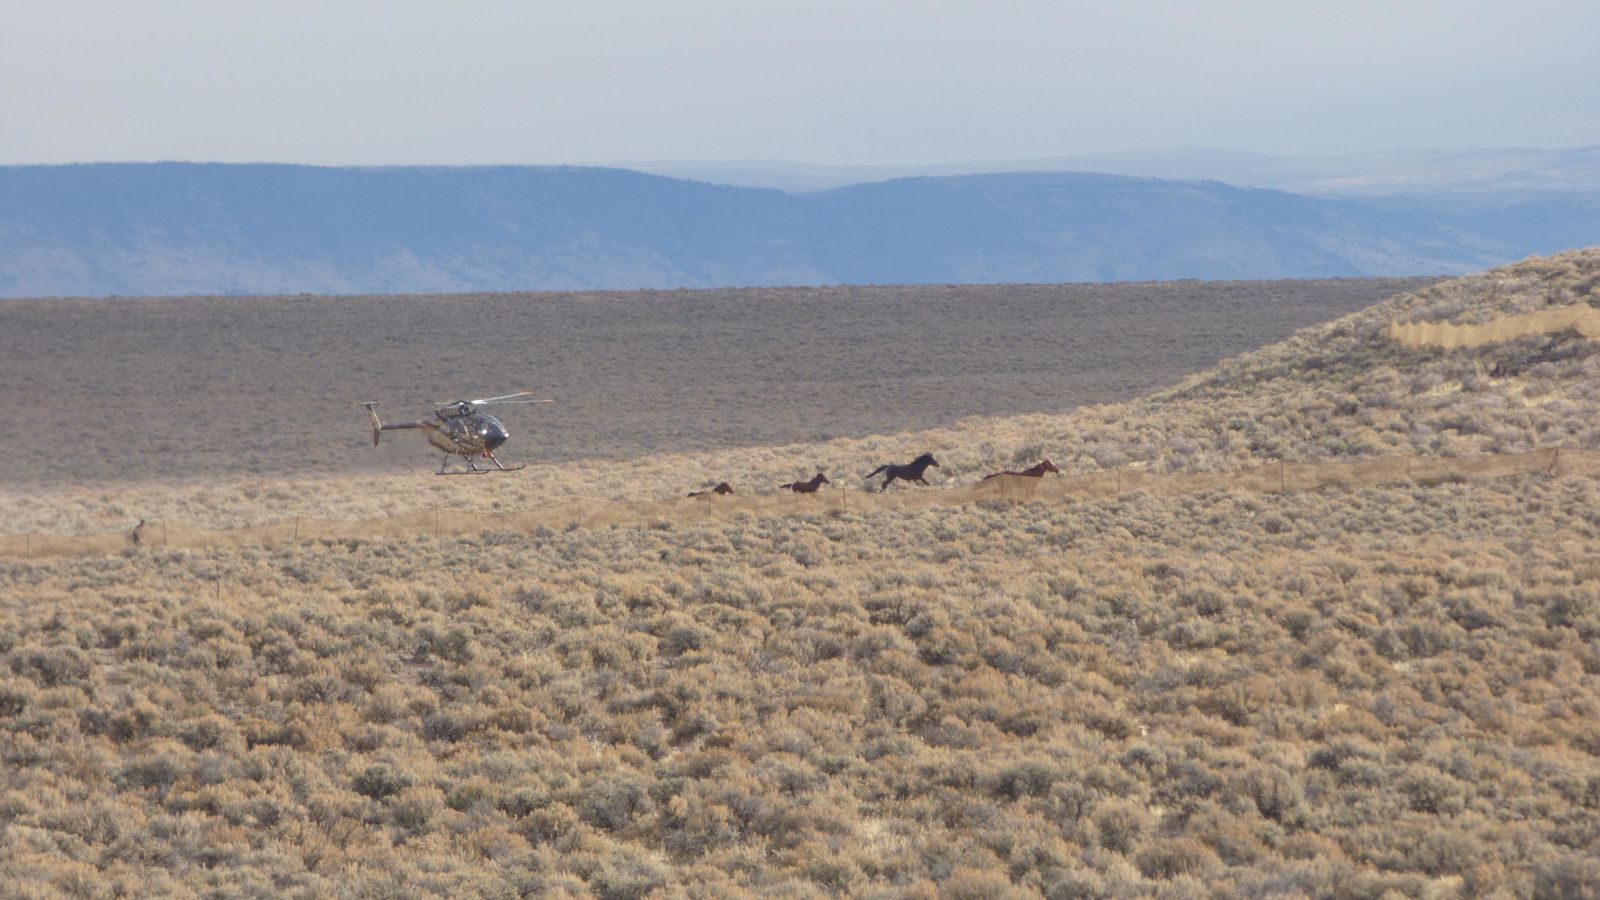 In early November of 2015, the BLM aimed to gather wild horses from the Beaty Butte Management Area. The remote southern Oregon location is 65 miles east of Lakeview and adjacent to the Hart Mountain National Wildlife Refuge.  Photos: Larisa Bogardus, BLM